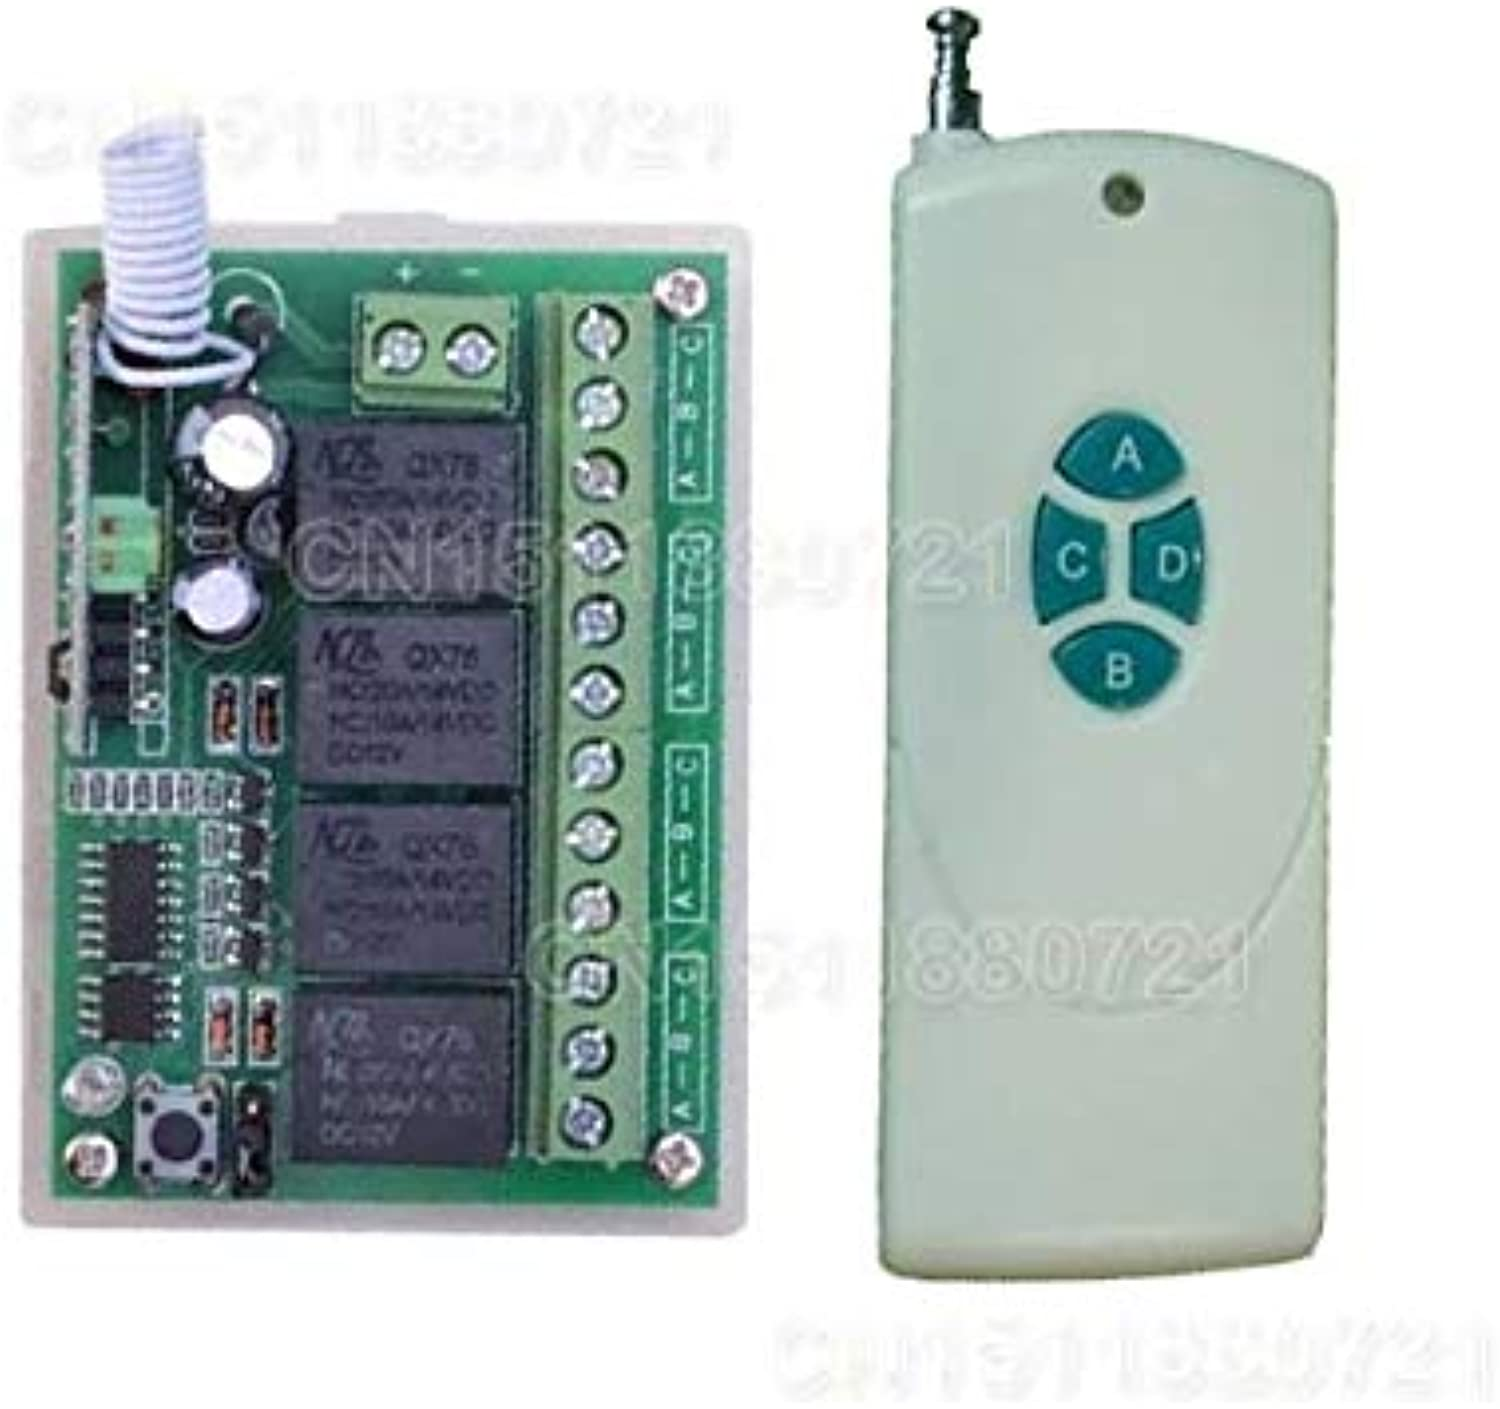 12V 4CH 1000M Wireless Remote Control Relay Switch Transceiver with Receiver Compatible with 2262 2260 1527 2240